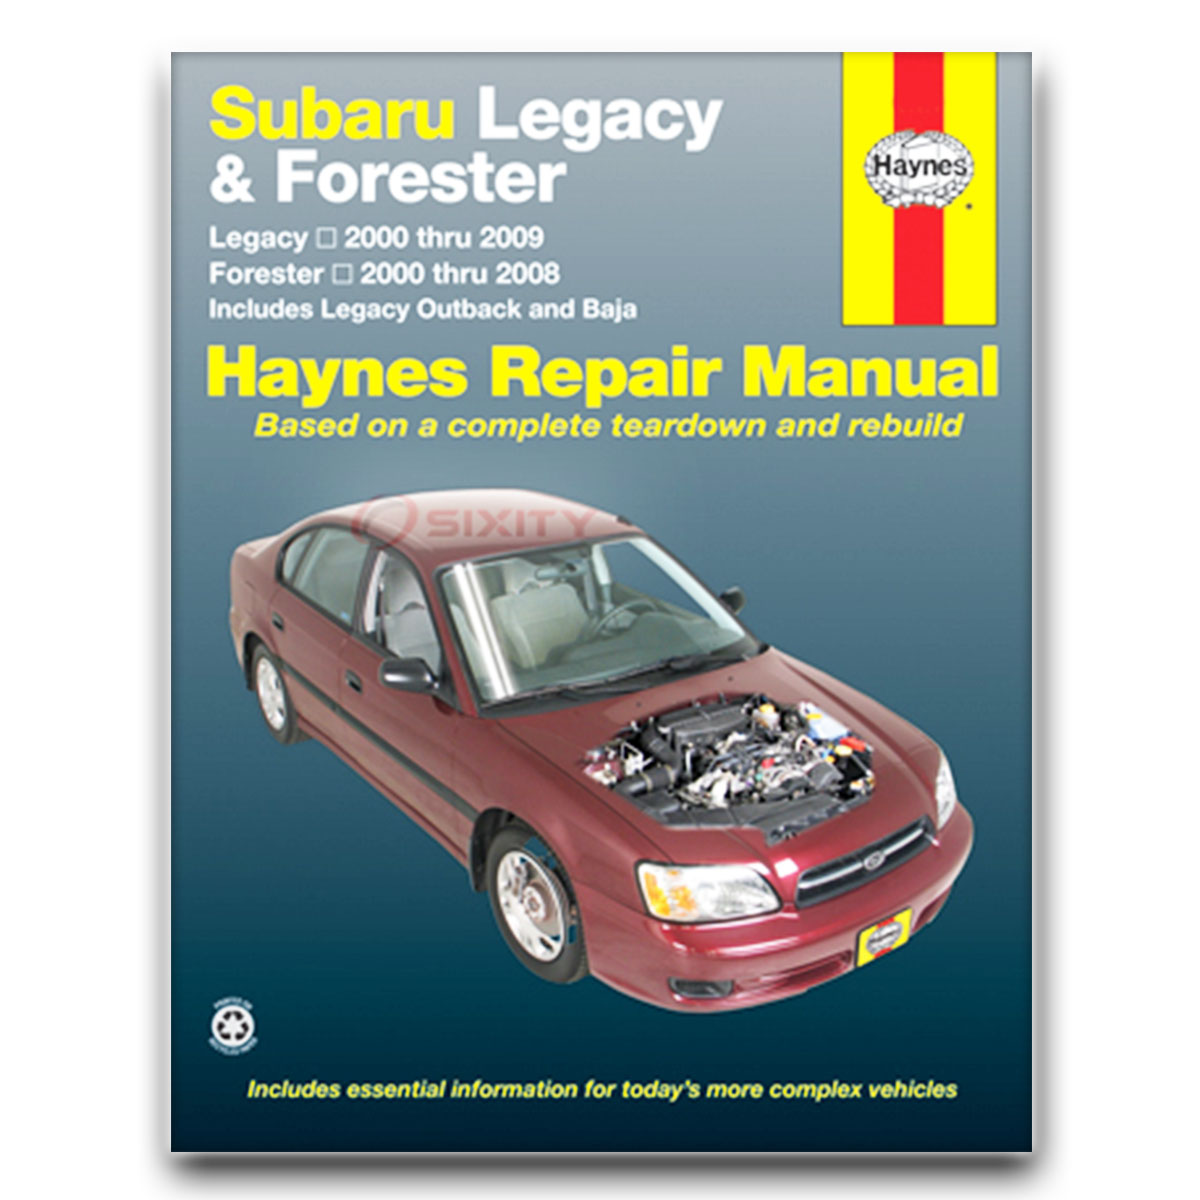 Haynes Repair Manual for Subaru Outback Limited H6 2.5i Basic VDC L.L. Bean  wg